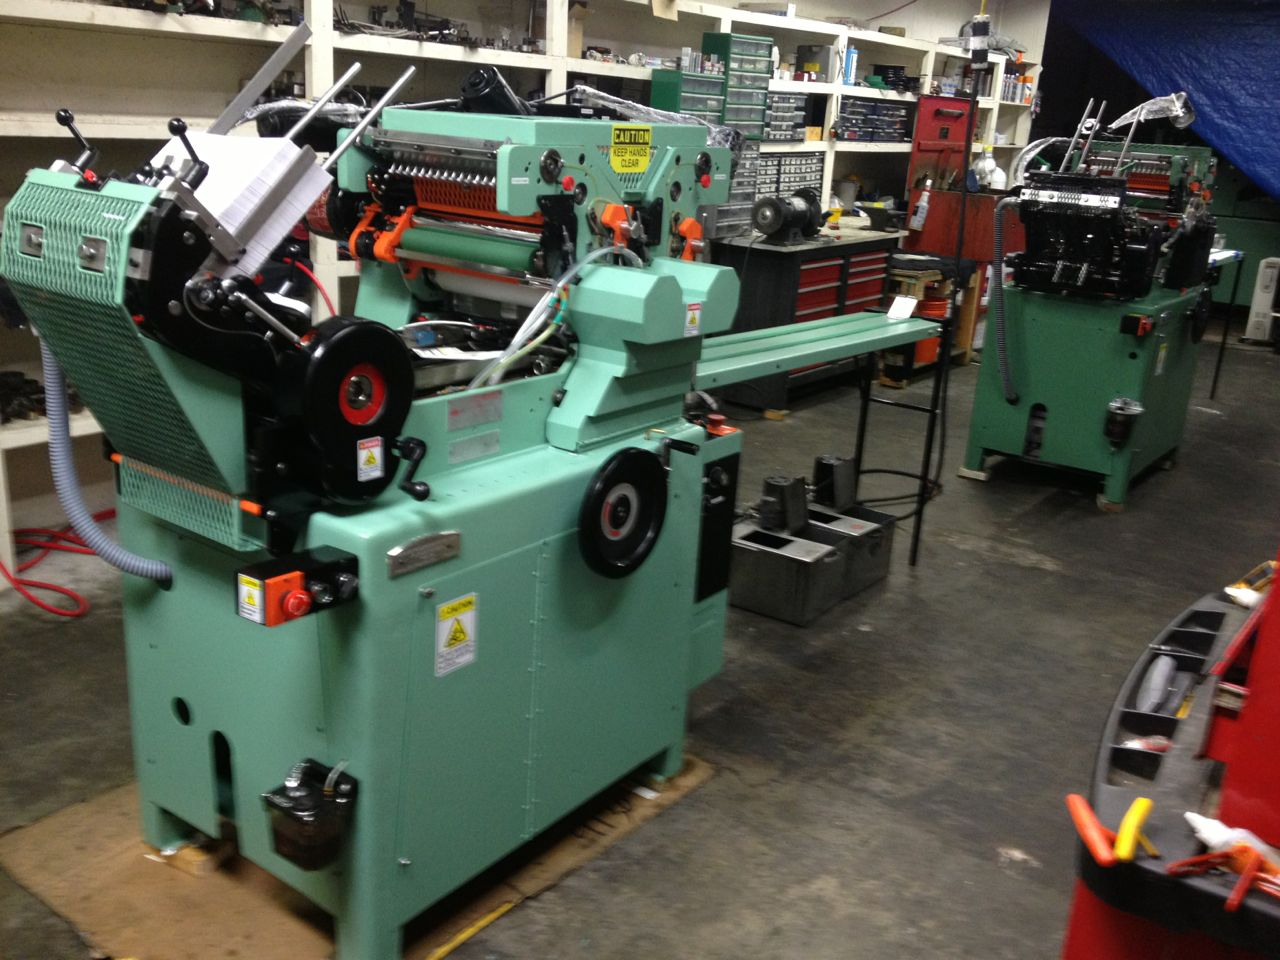 HALM JET PRESS REBUILT IN MARCH 2013 LIKE NEW model JP-TWOD-P sn 3638